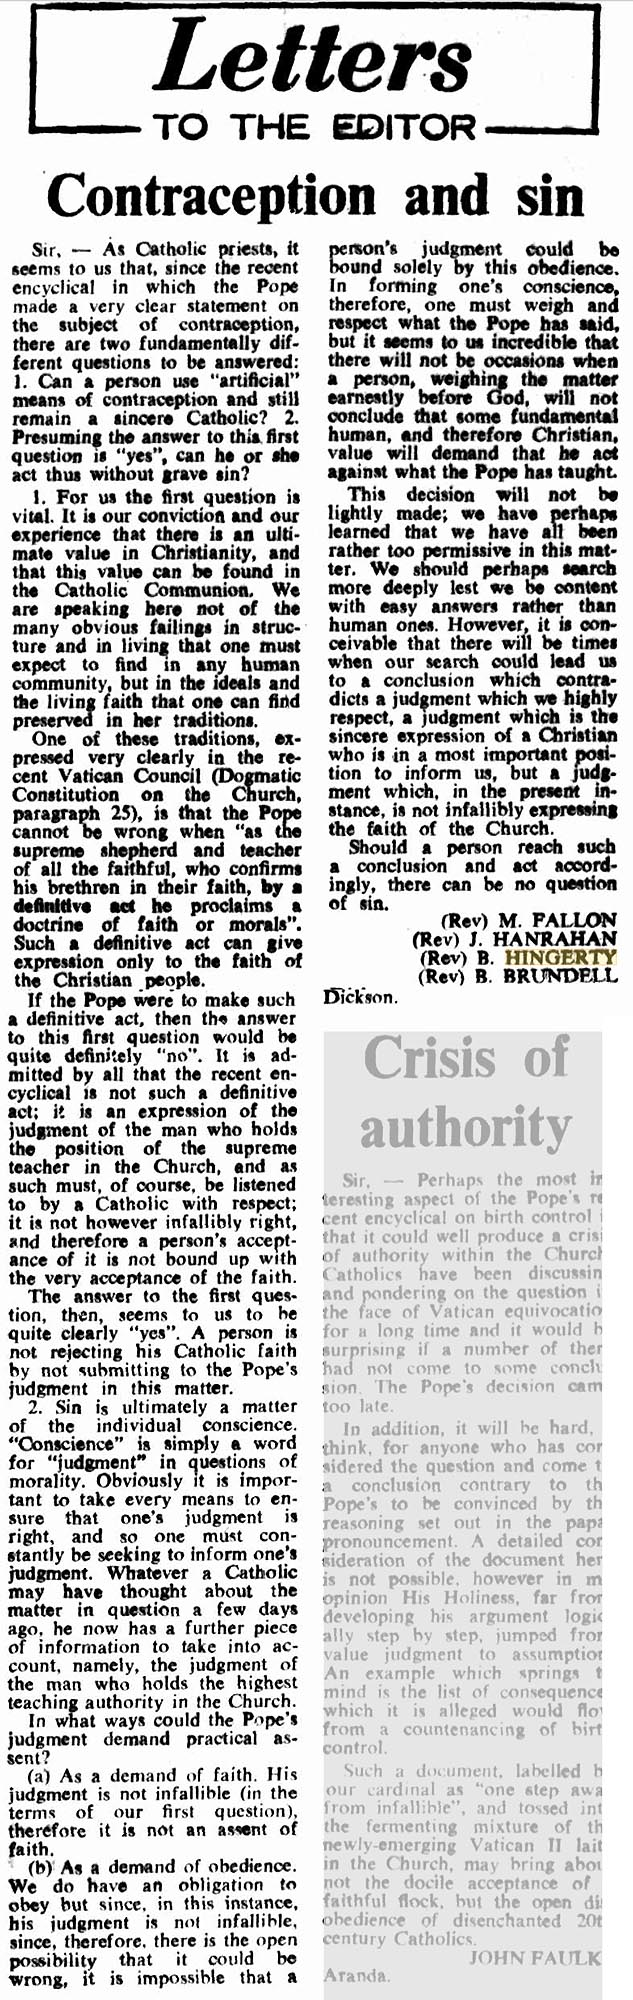 canberra-times-1968